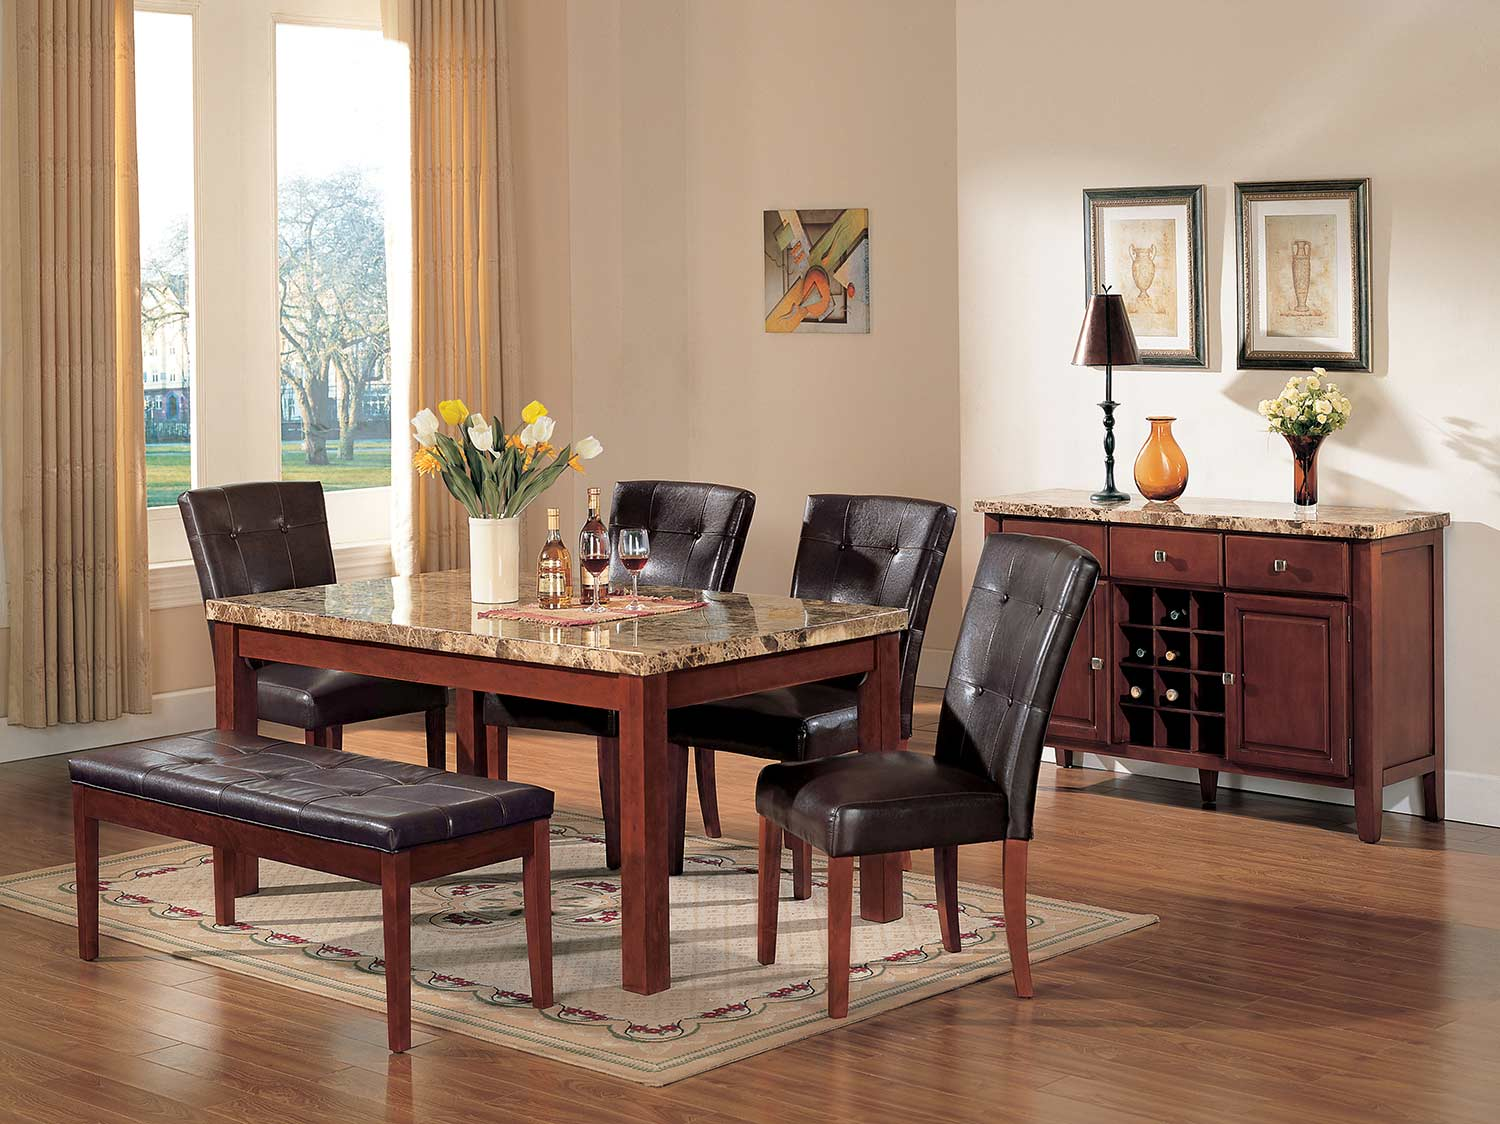 Acme Bologna Dining Set - Brown Marble/Brown Cherry